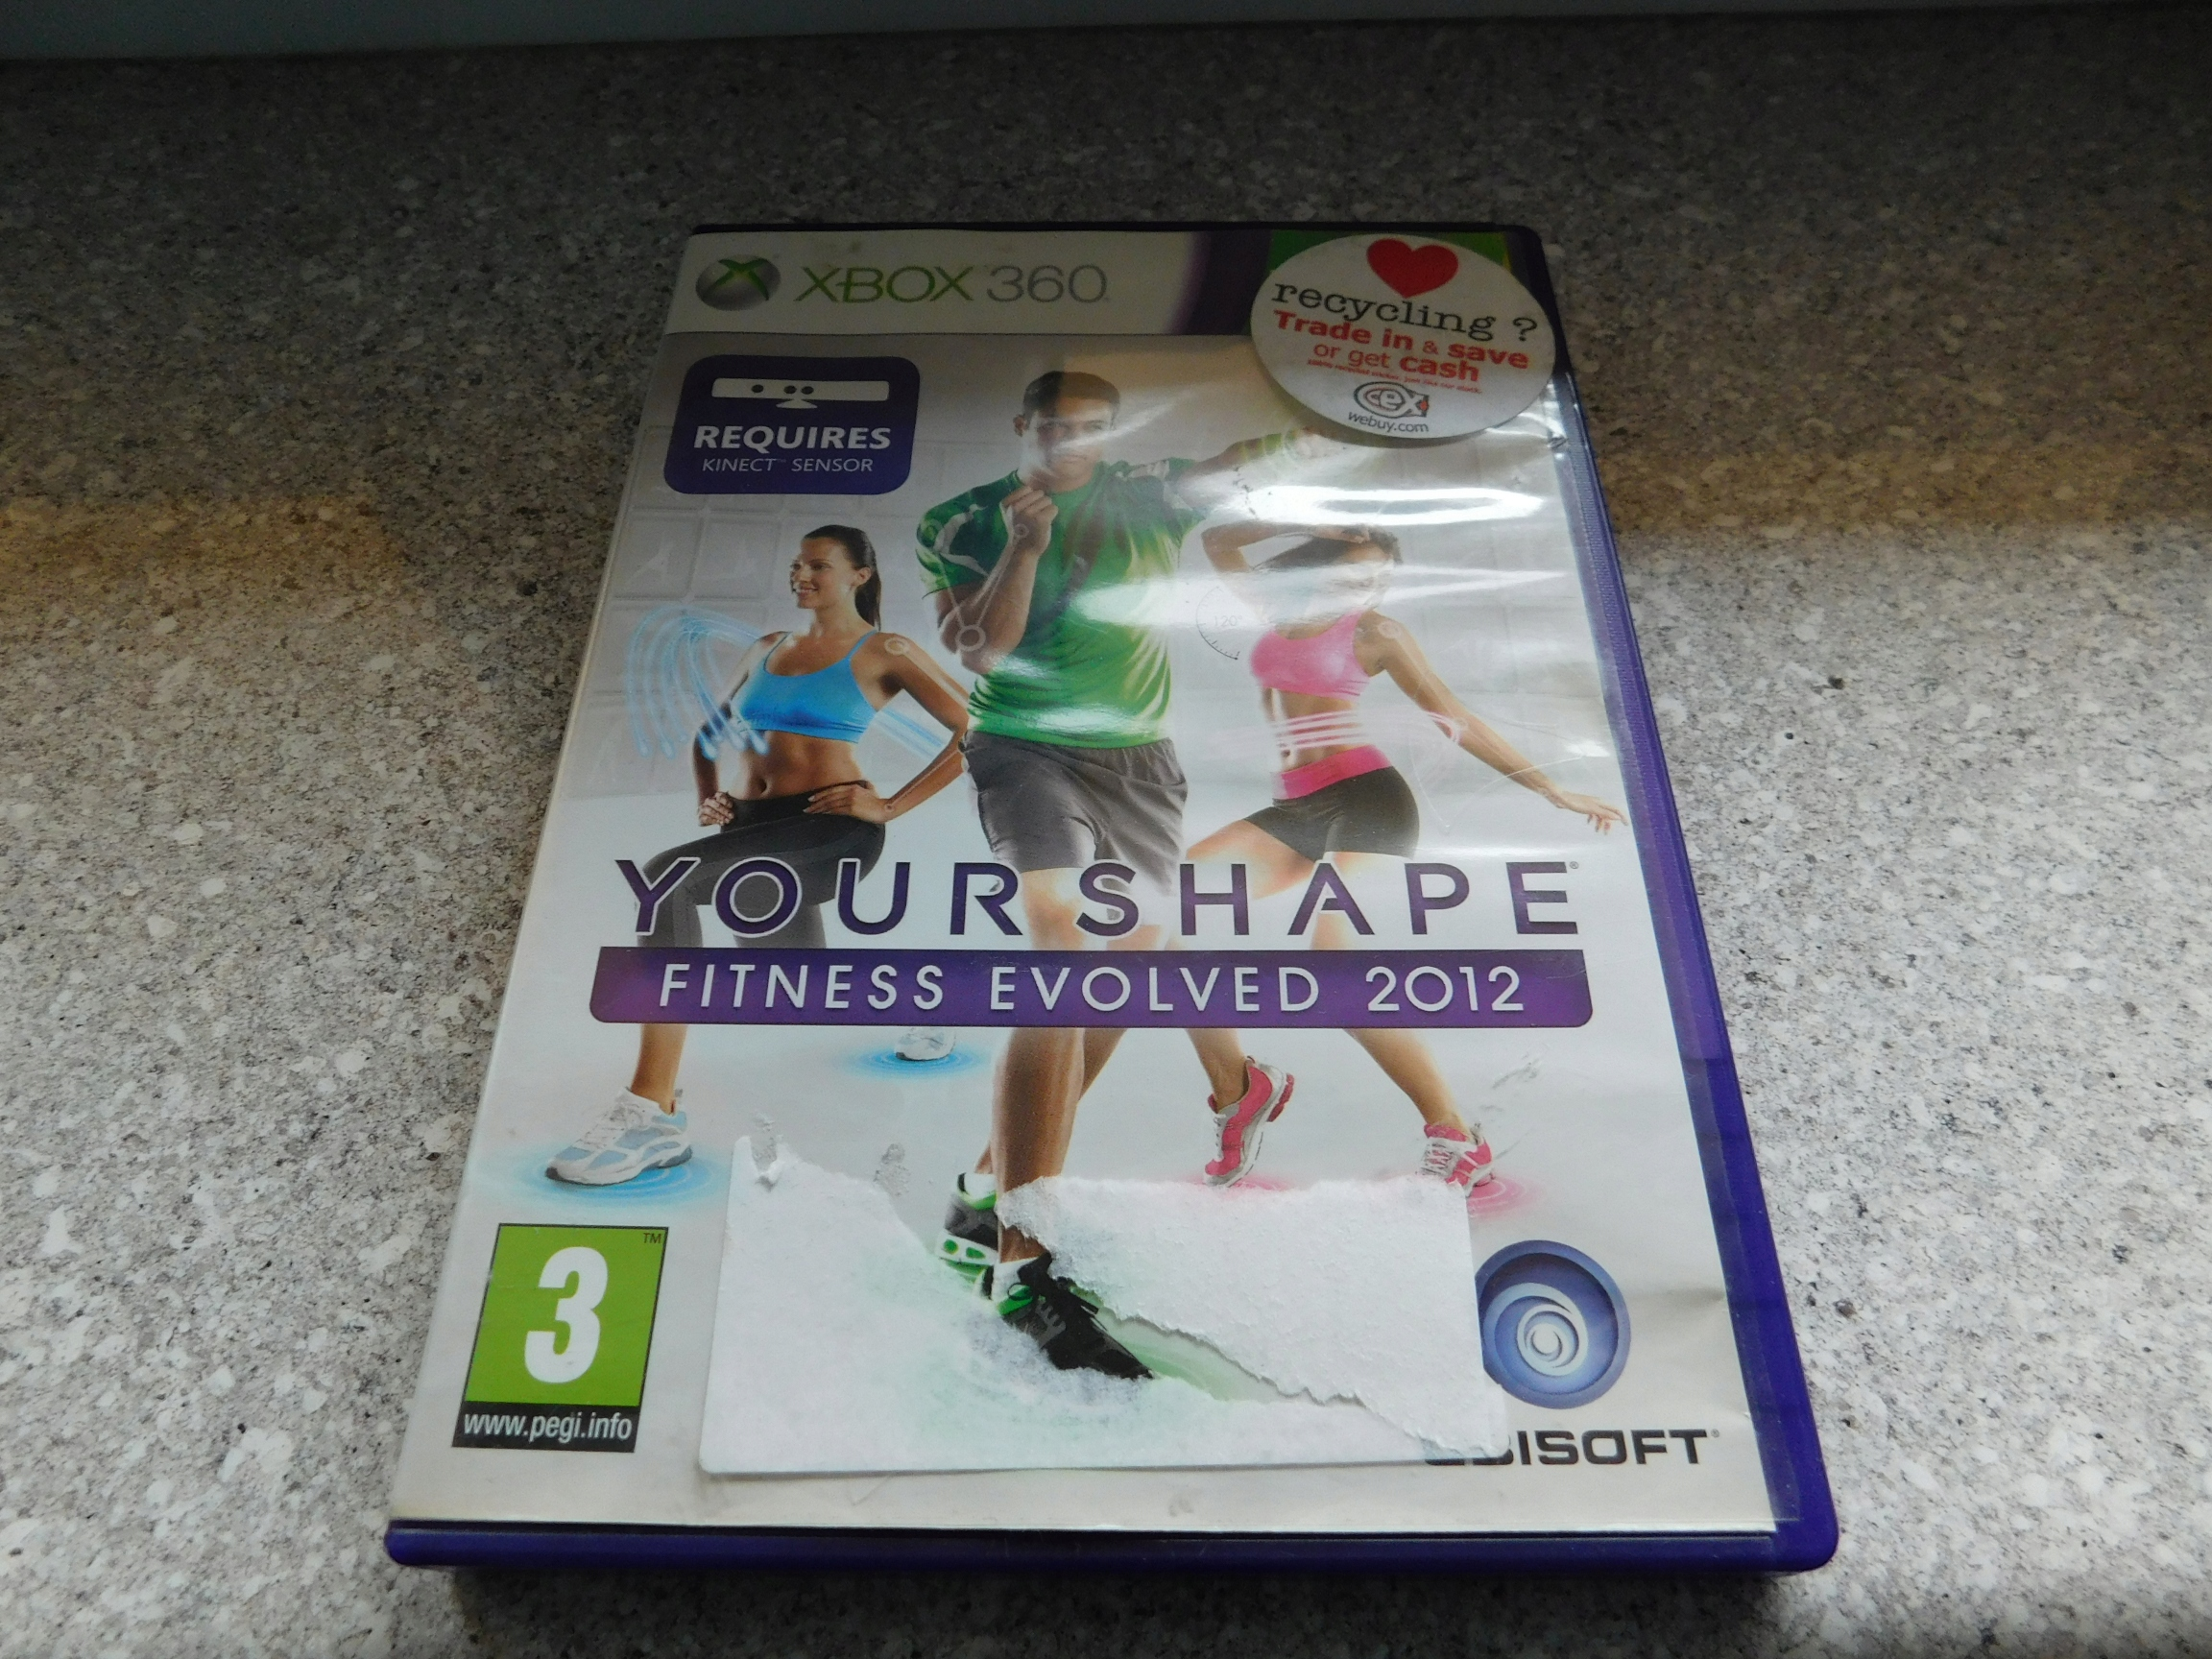 Your Shape Fitness Evolved 2012 Gra na Xbox 360